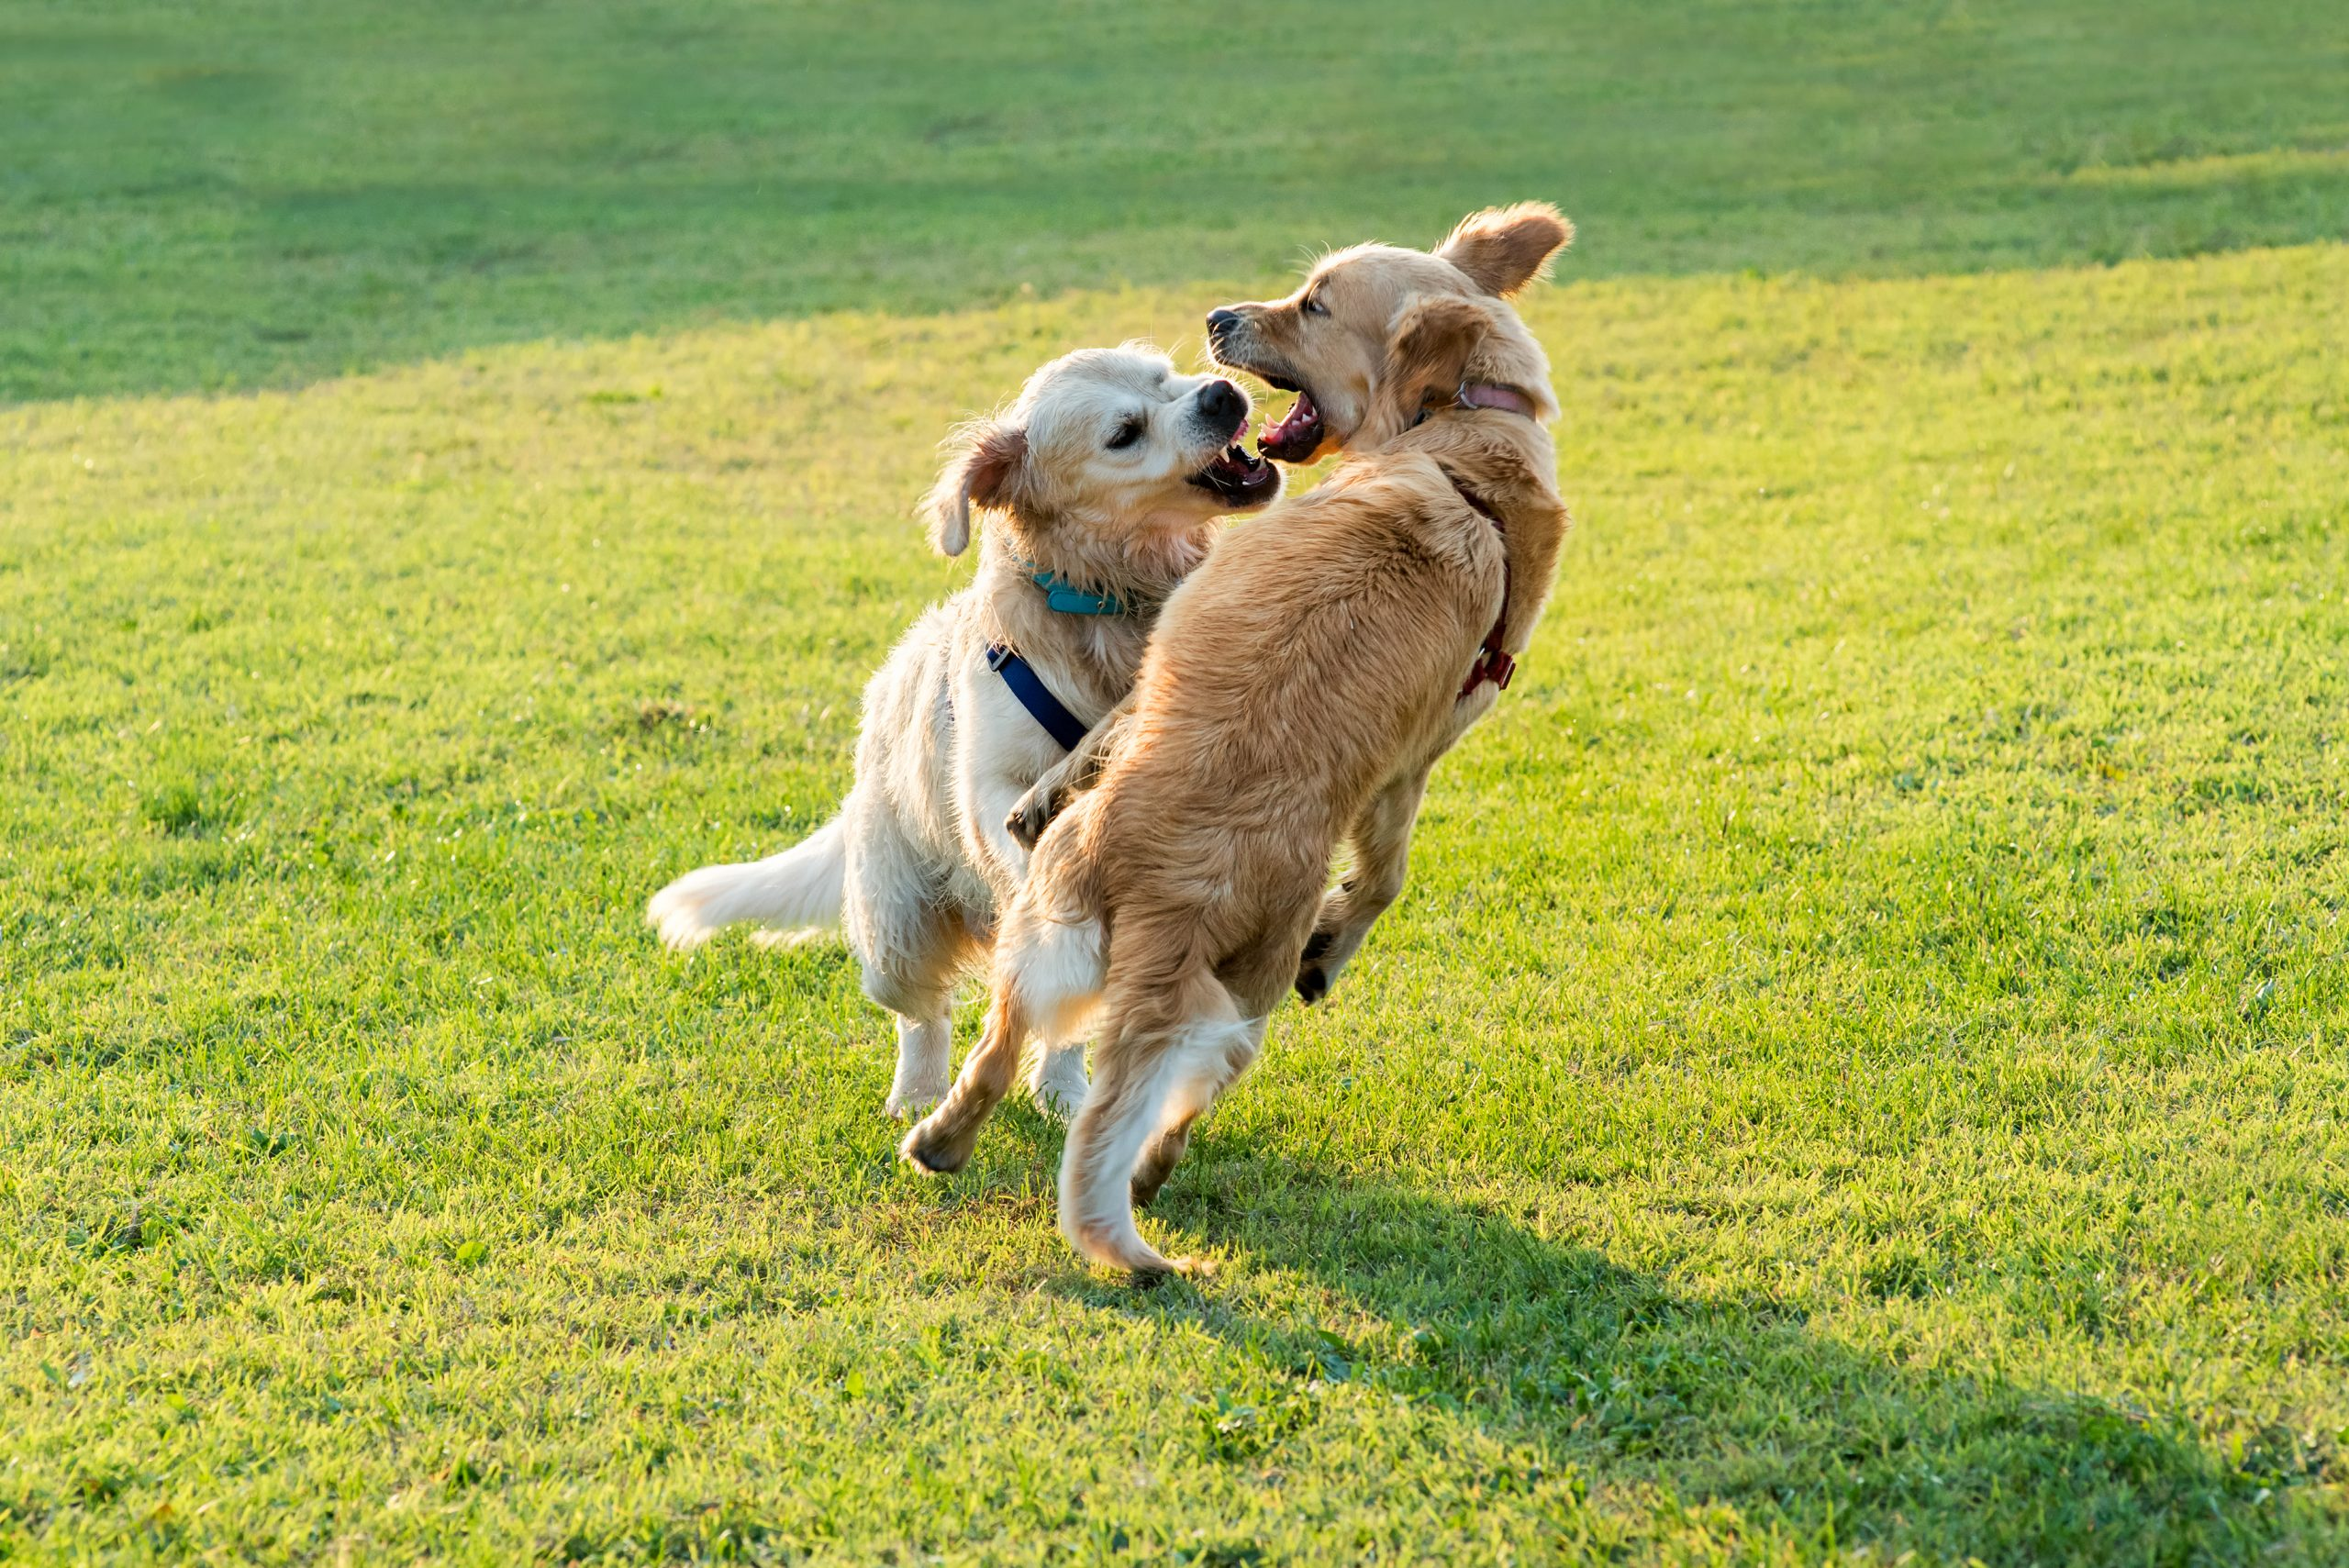 Best Ways To Stop Dogs From Biting – Learn These Tricks